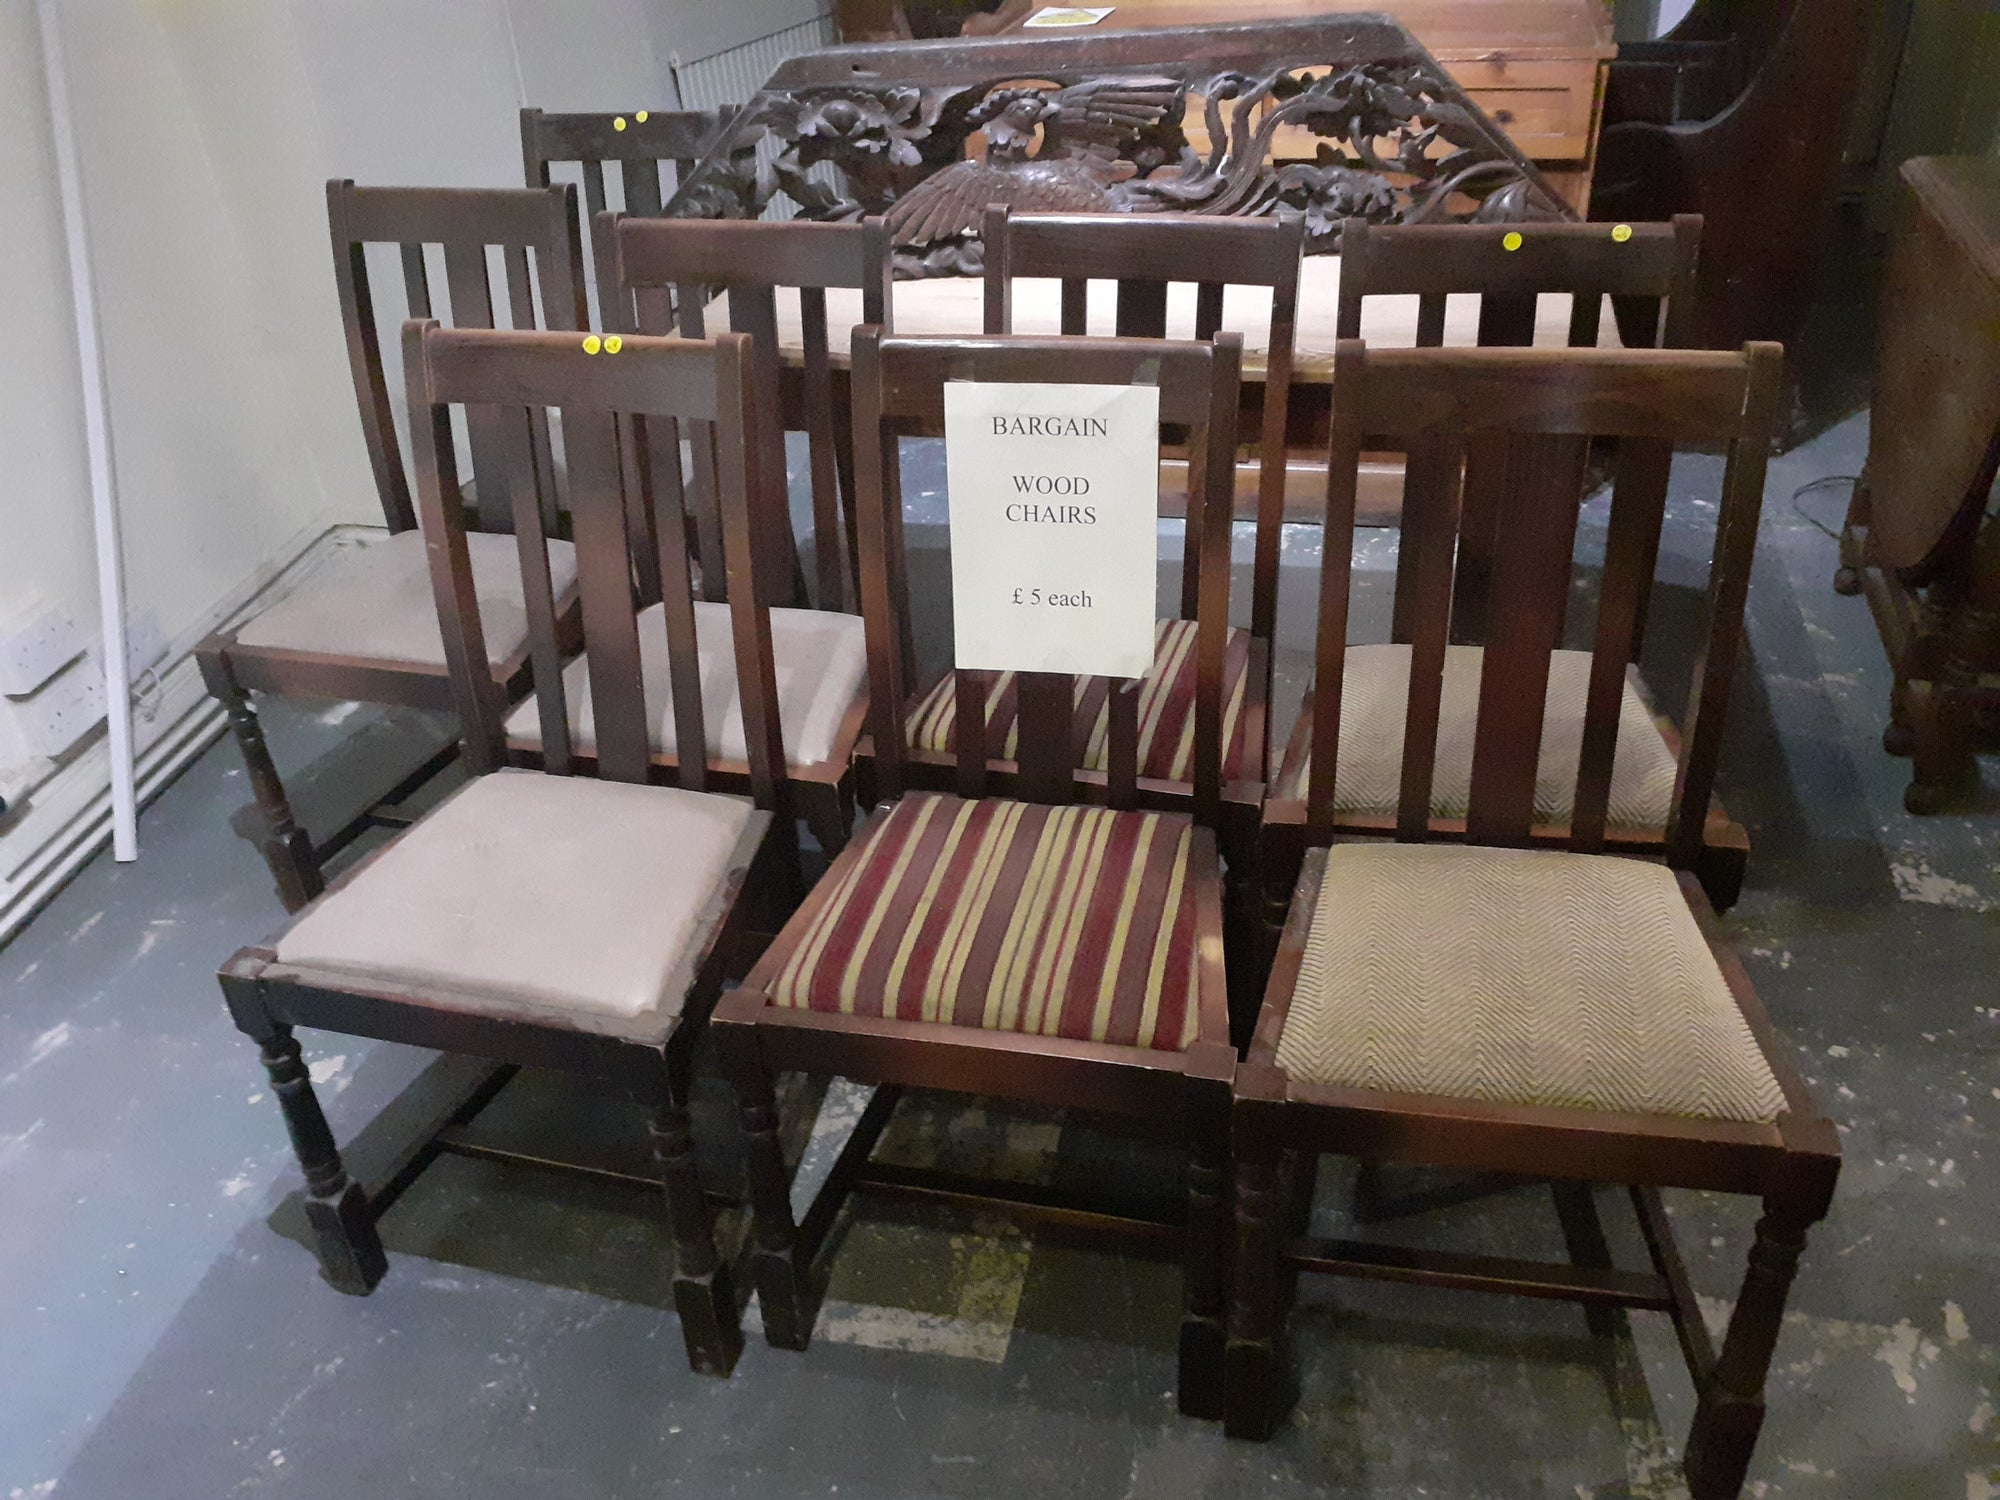 last few days of give away chairs £5 & £10 to make space for new dealer